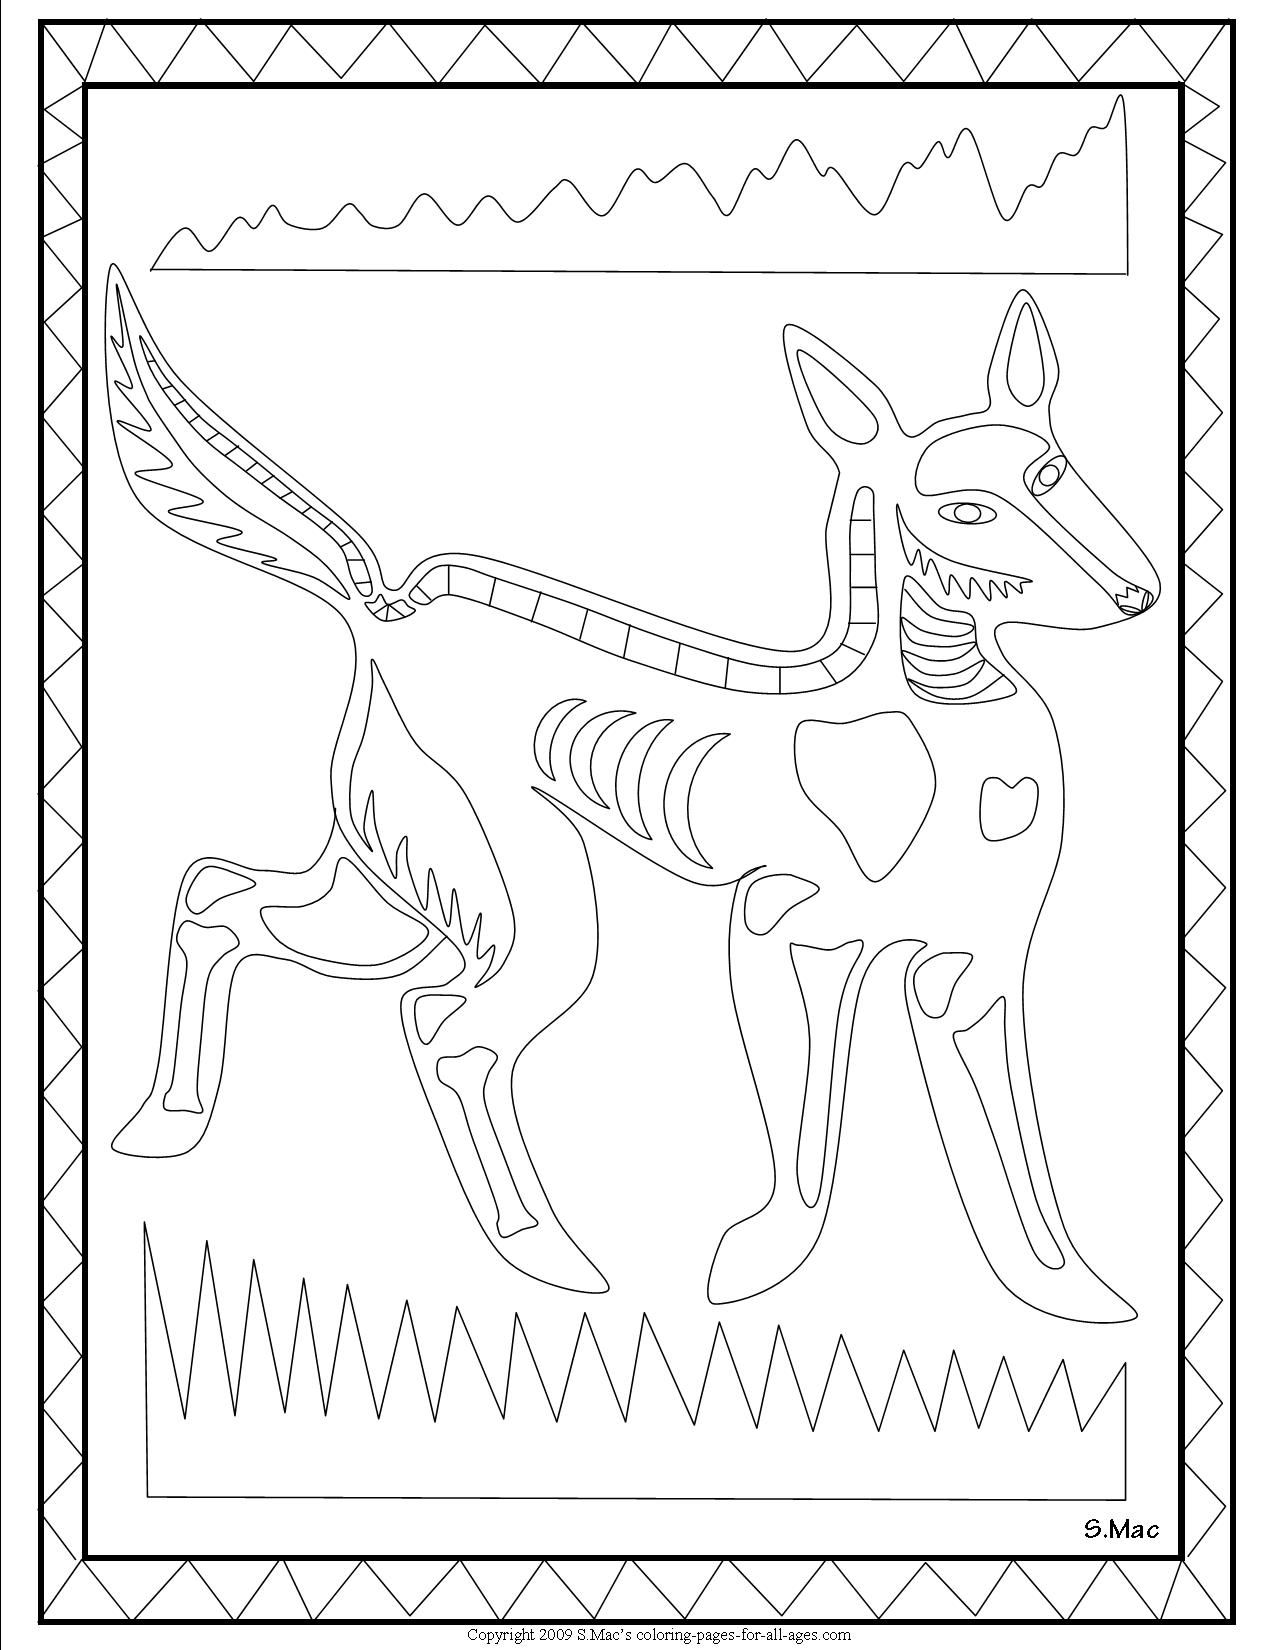 Free coloring pages x ray - Find Inspiration In X Ray Art Coloring Pages X Ray Art Coloring Pages Were Inspired By Artwork Created By The Indigenous People Of Australia